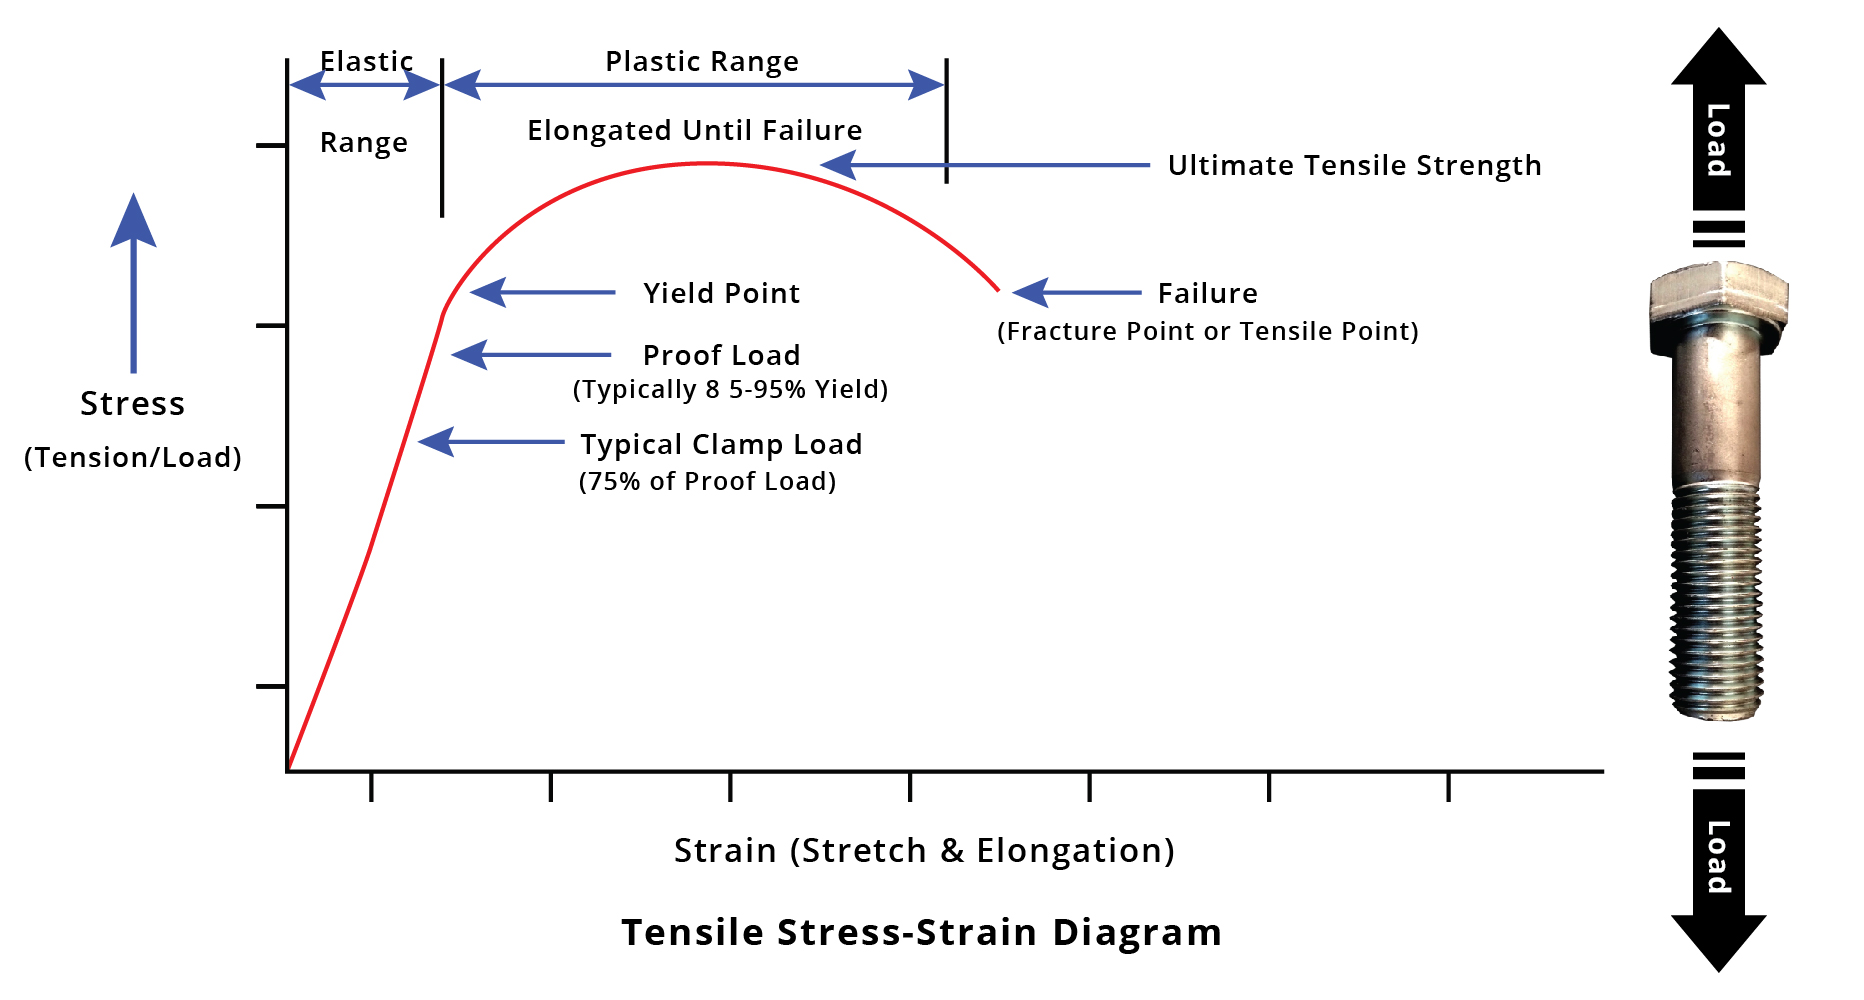 tensile strength An example of tensile strength is how much force can be put on a material before it tears apart.